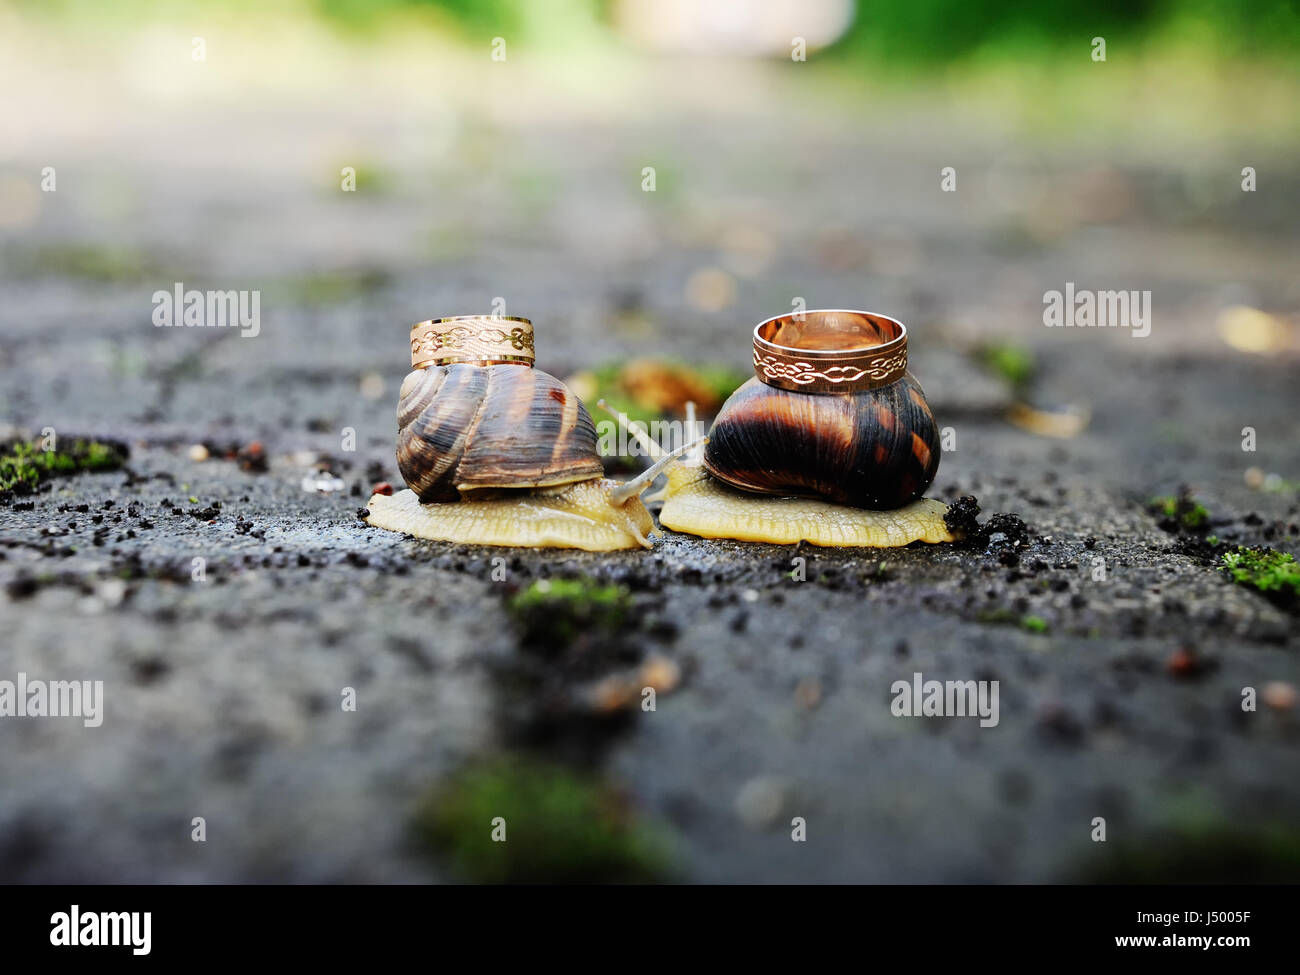 wedding rings on snails. Snails kiss. Stock Photo